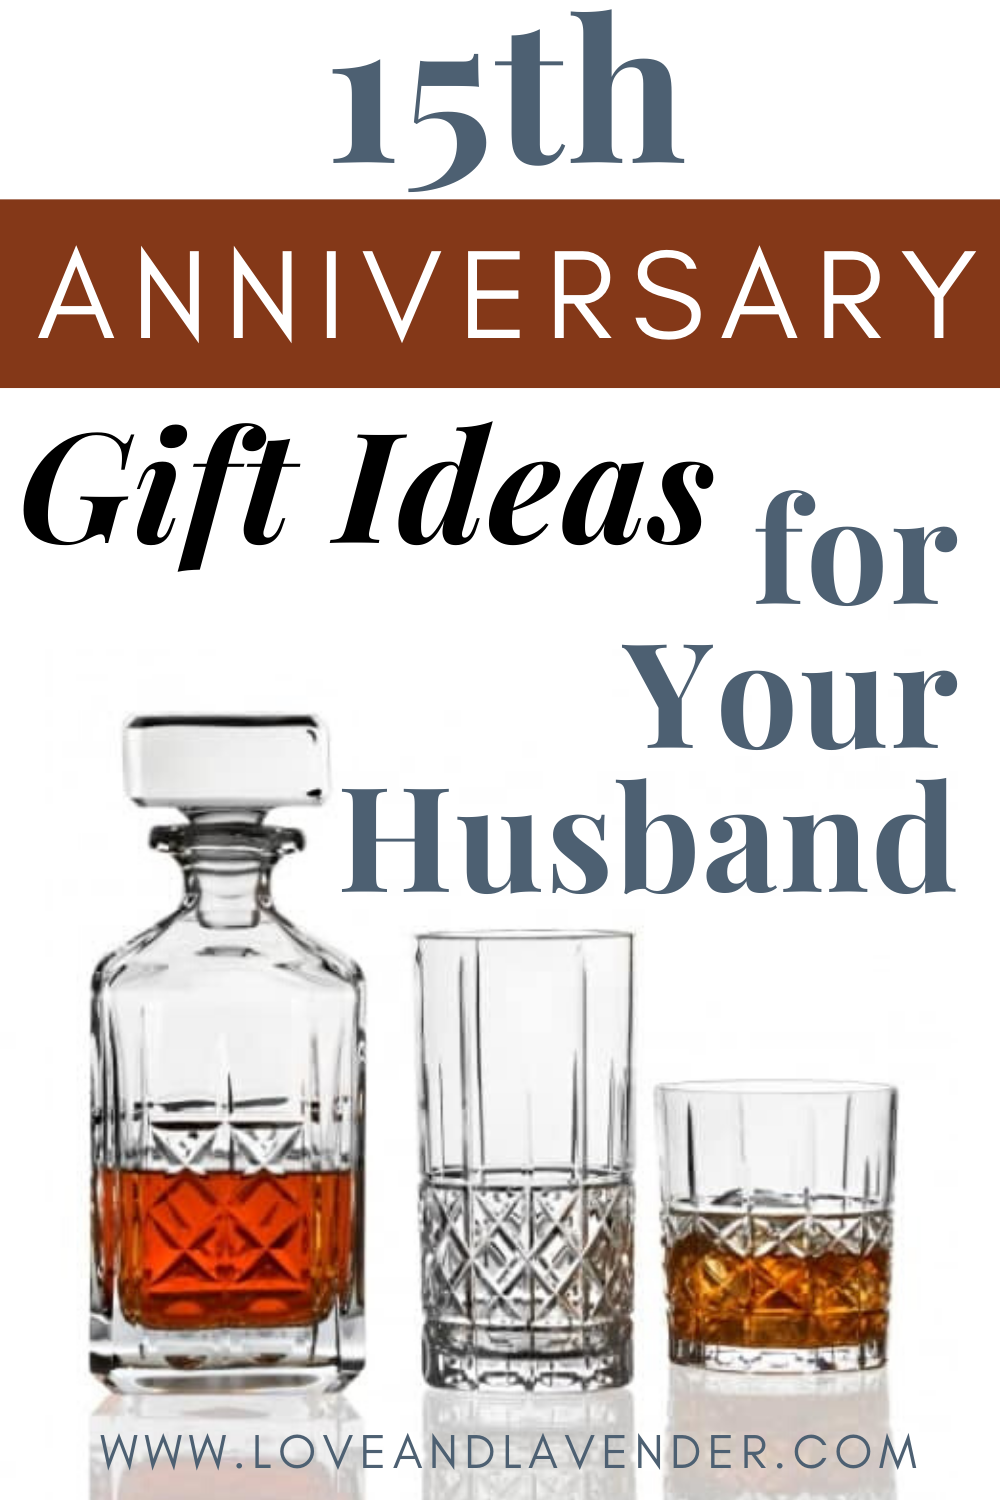 Pin on Wedding Anniversary Gifts & Ideas